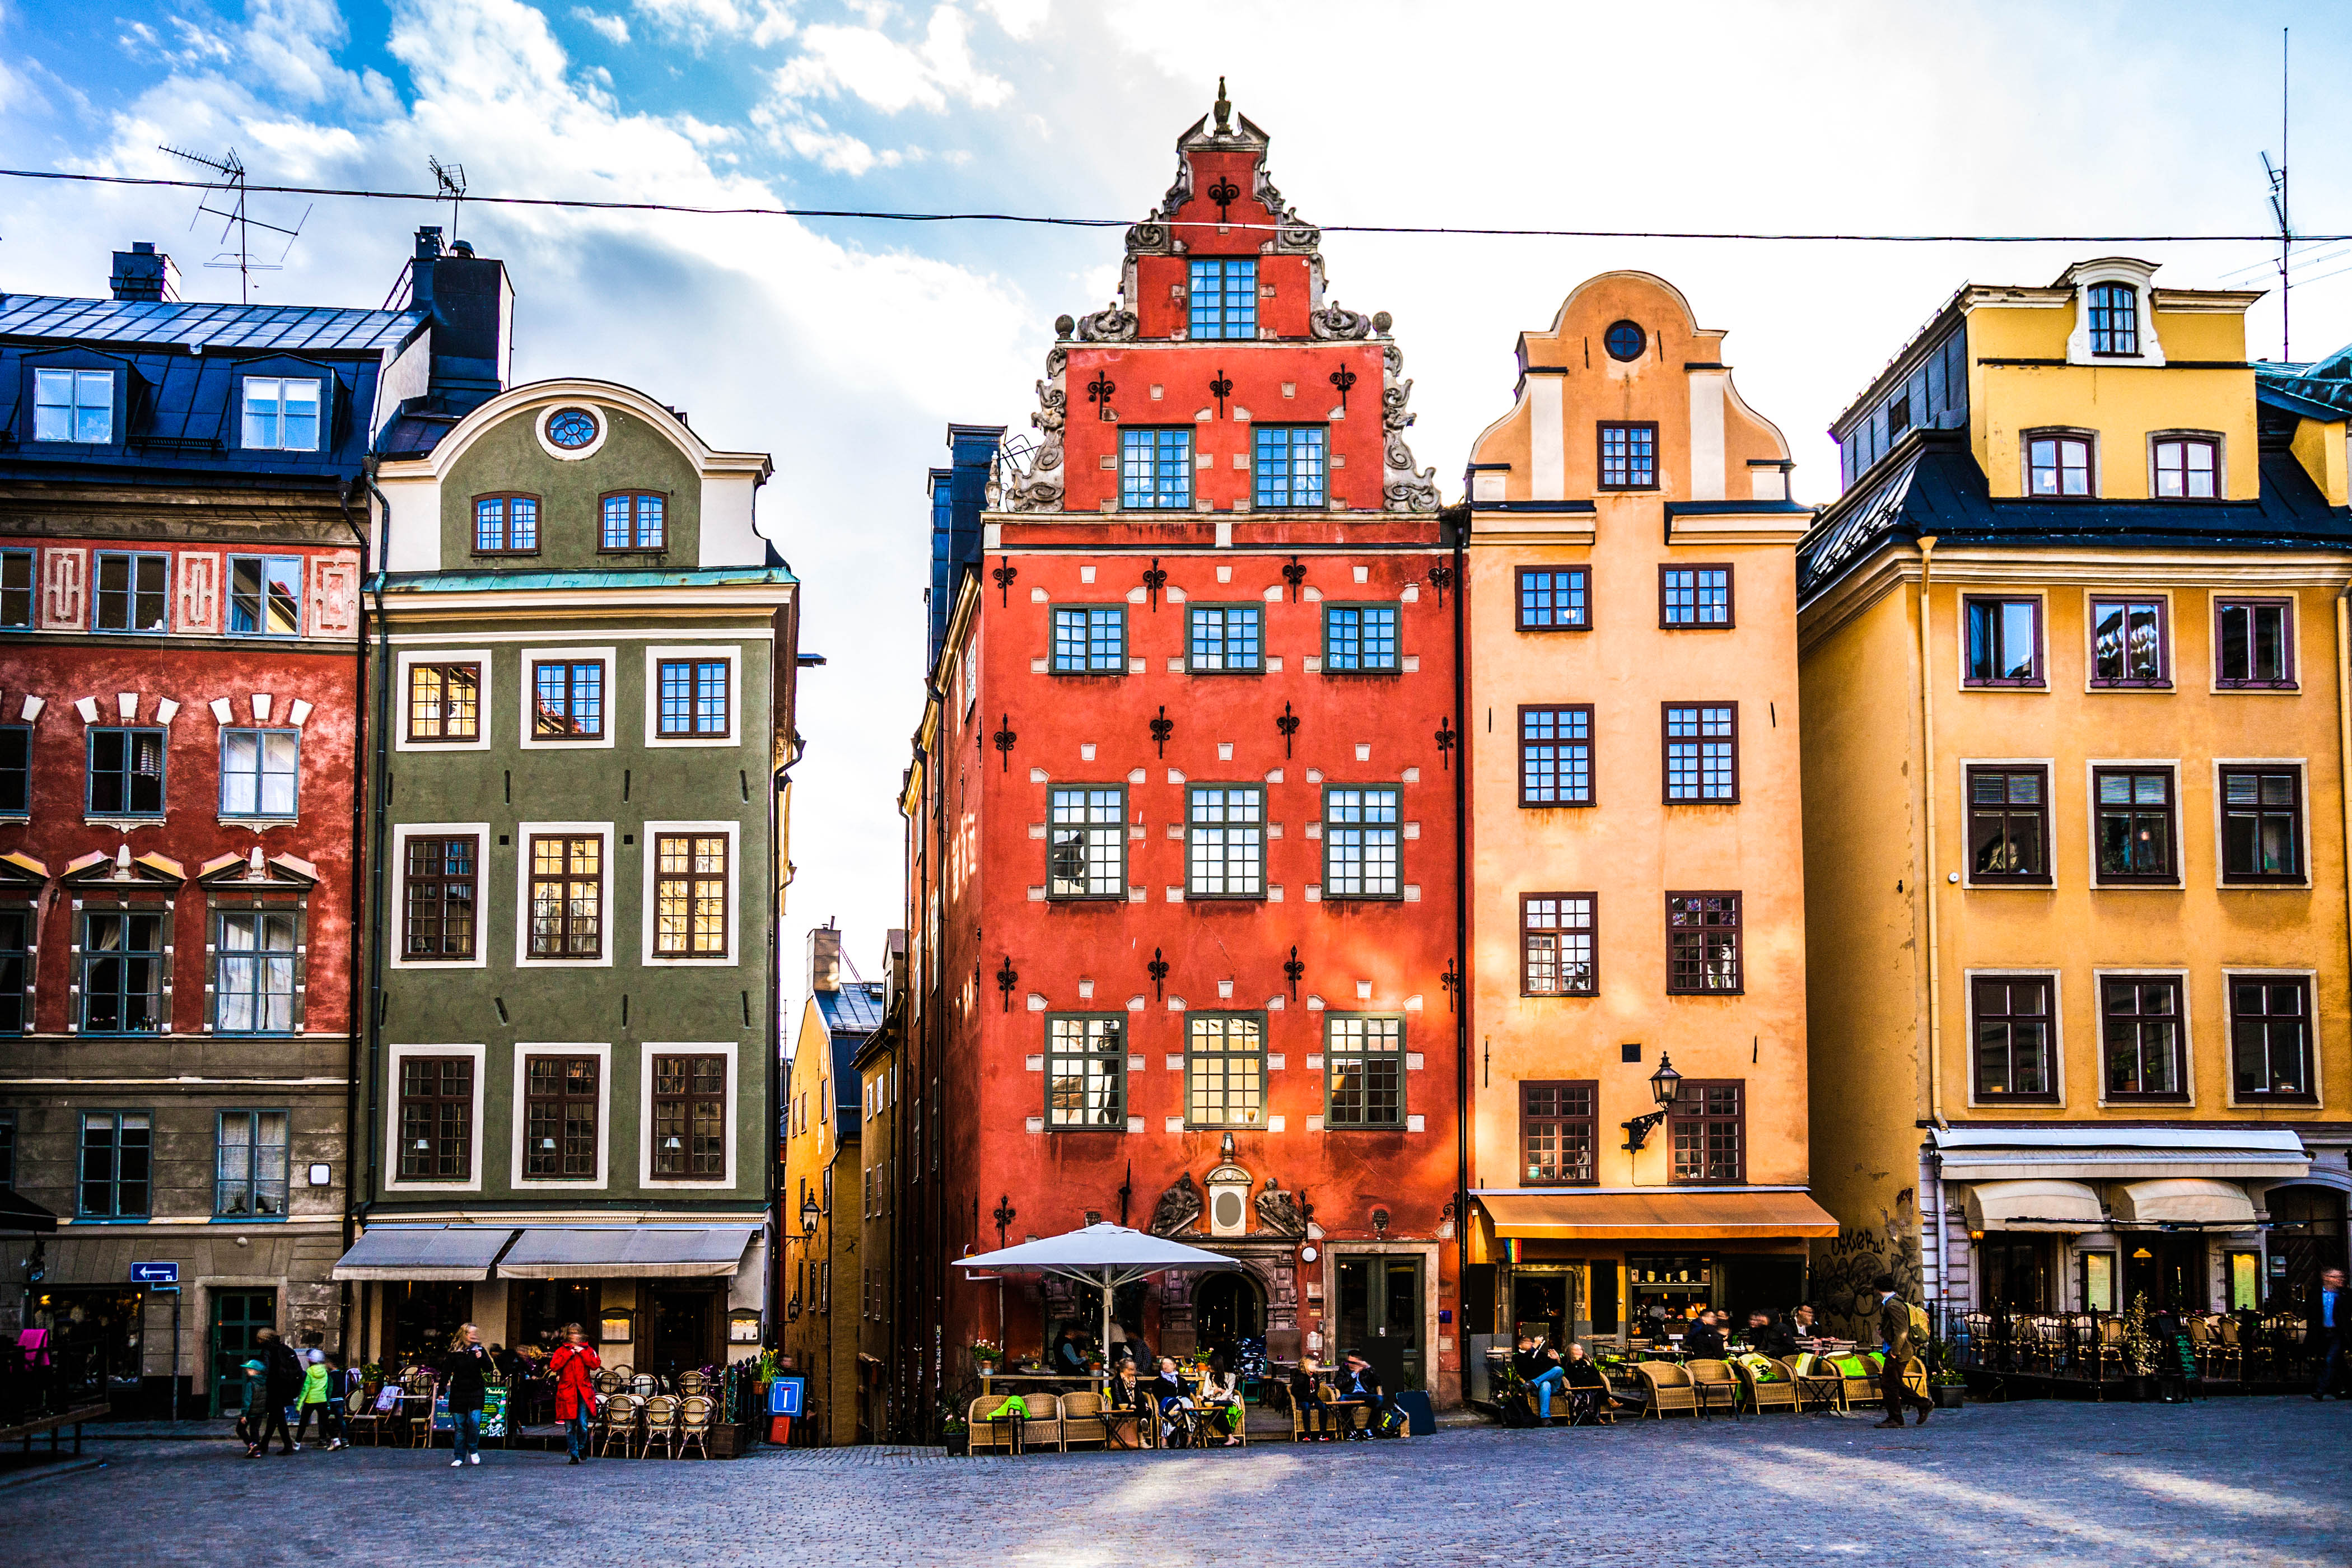 Stockholm, Sweden, Old town and town square.